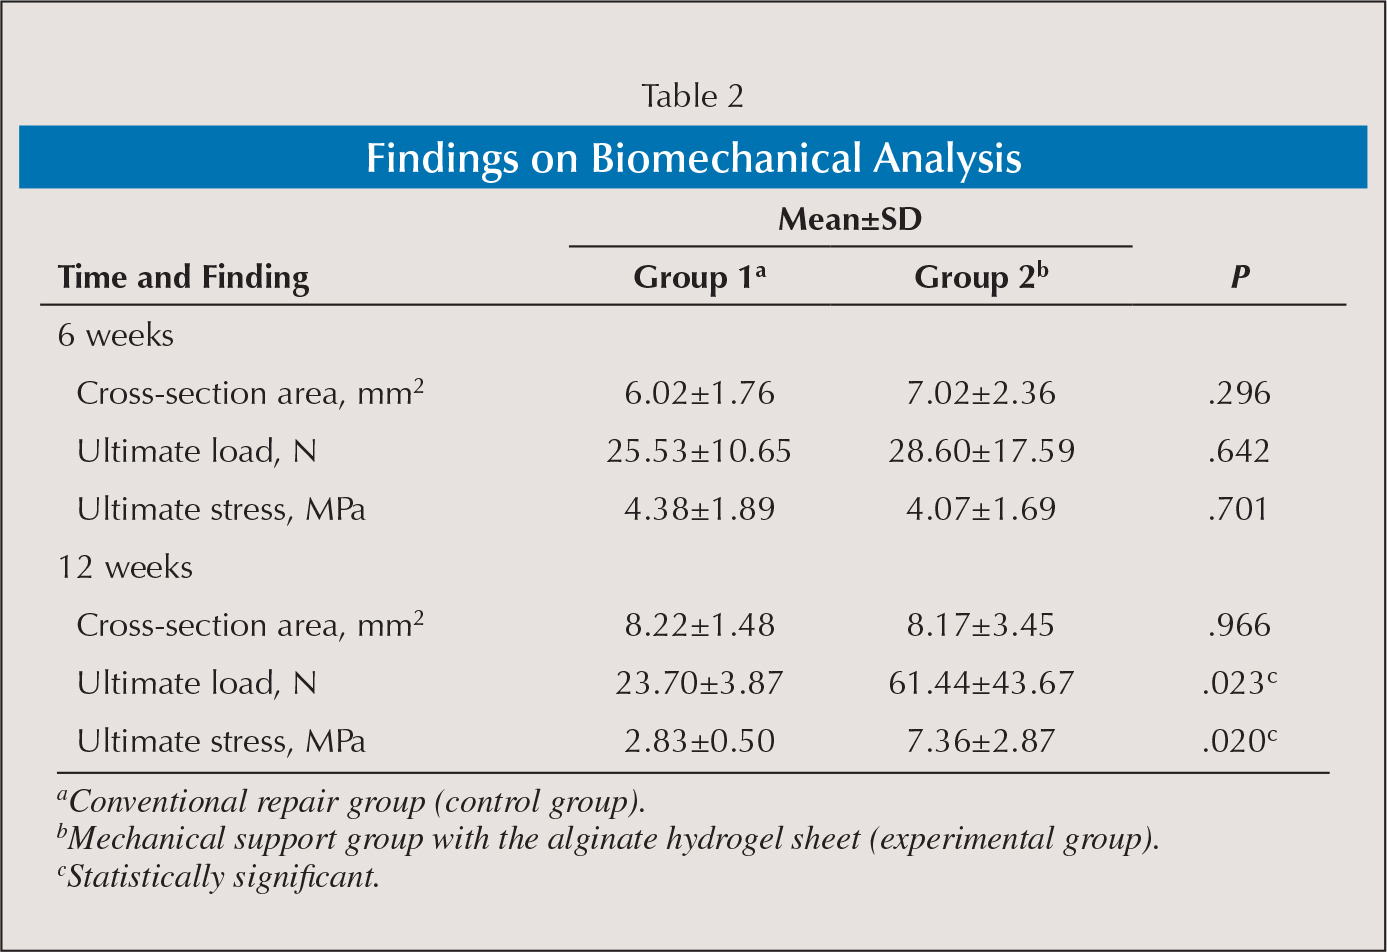 Findings on Biomechanical Analysis